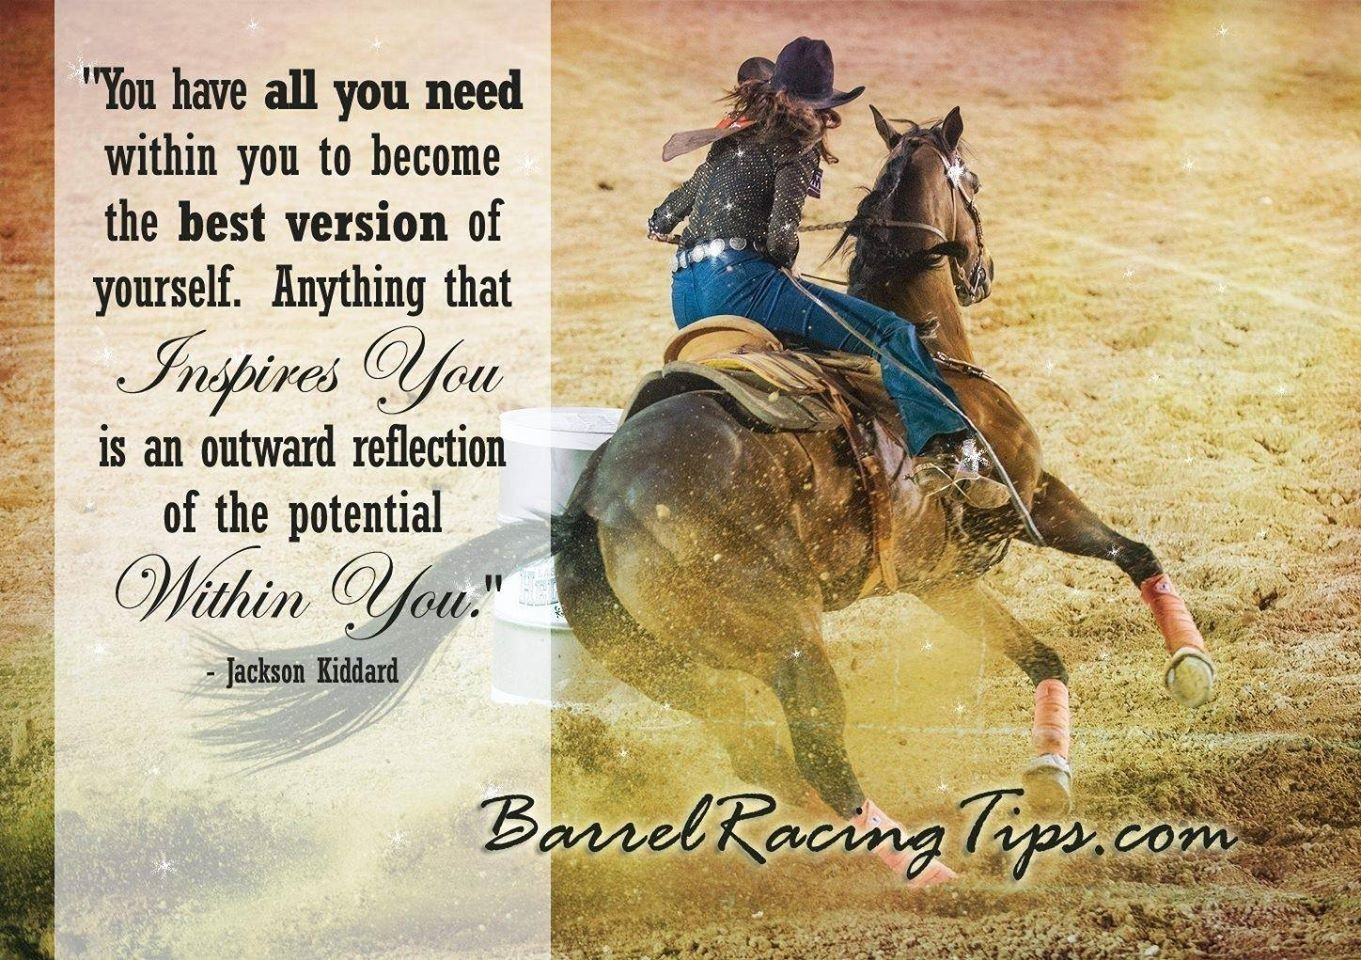 Quotes 2: 229 ALL NEW INSPIRATIONAL QUOTES ABOUT HORSE RACING